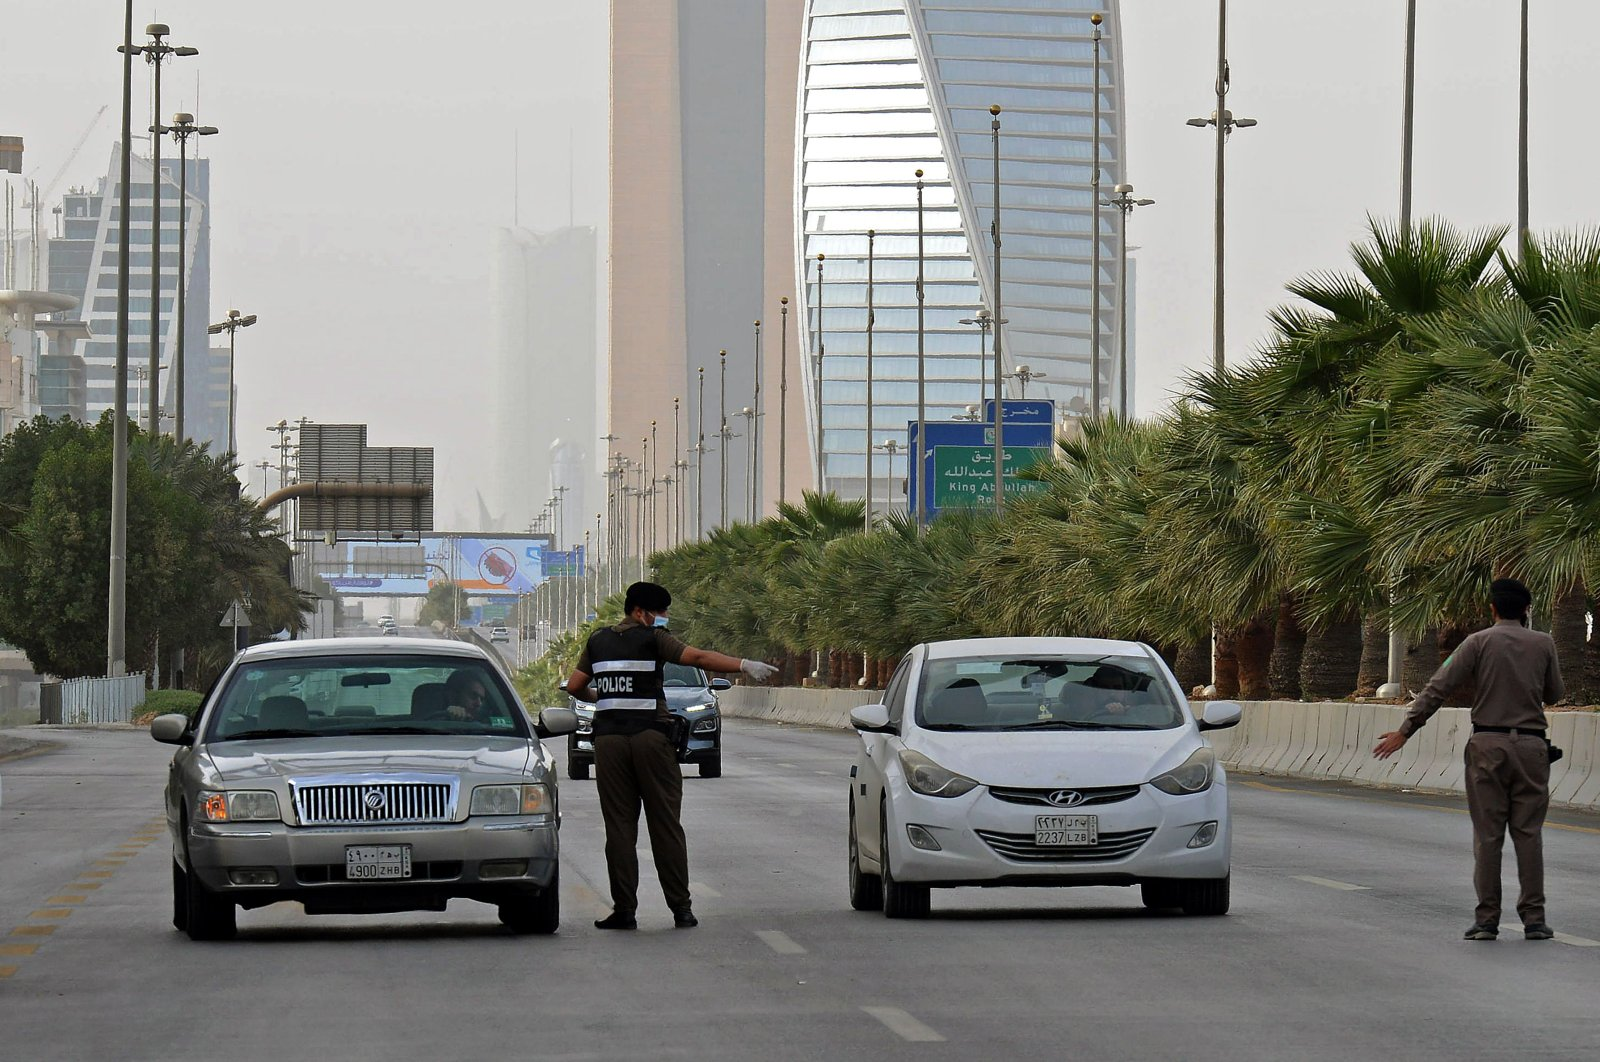 Policemen are seen manning a checkpoint in King Fahad Street in Riyadh, Saudi Arabia, Thursday, March 26, 2020. (AFP Photo)